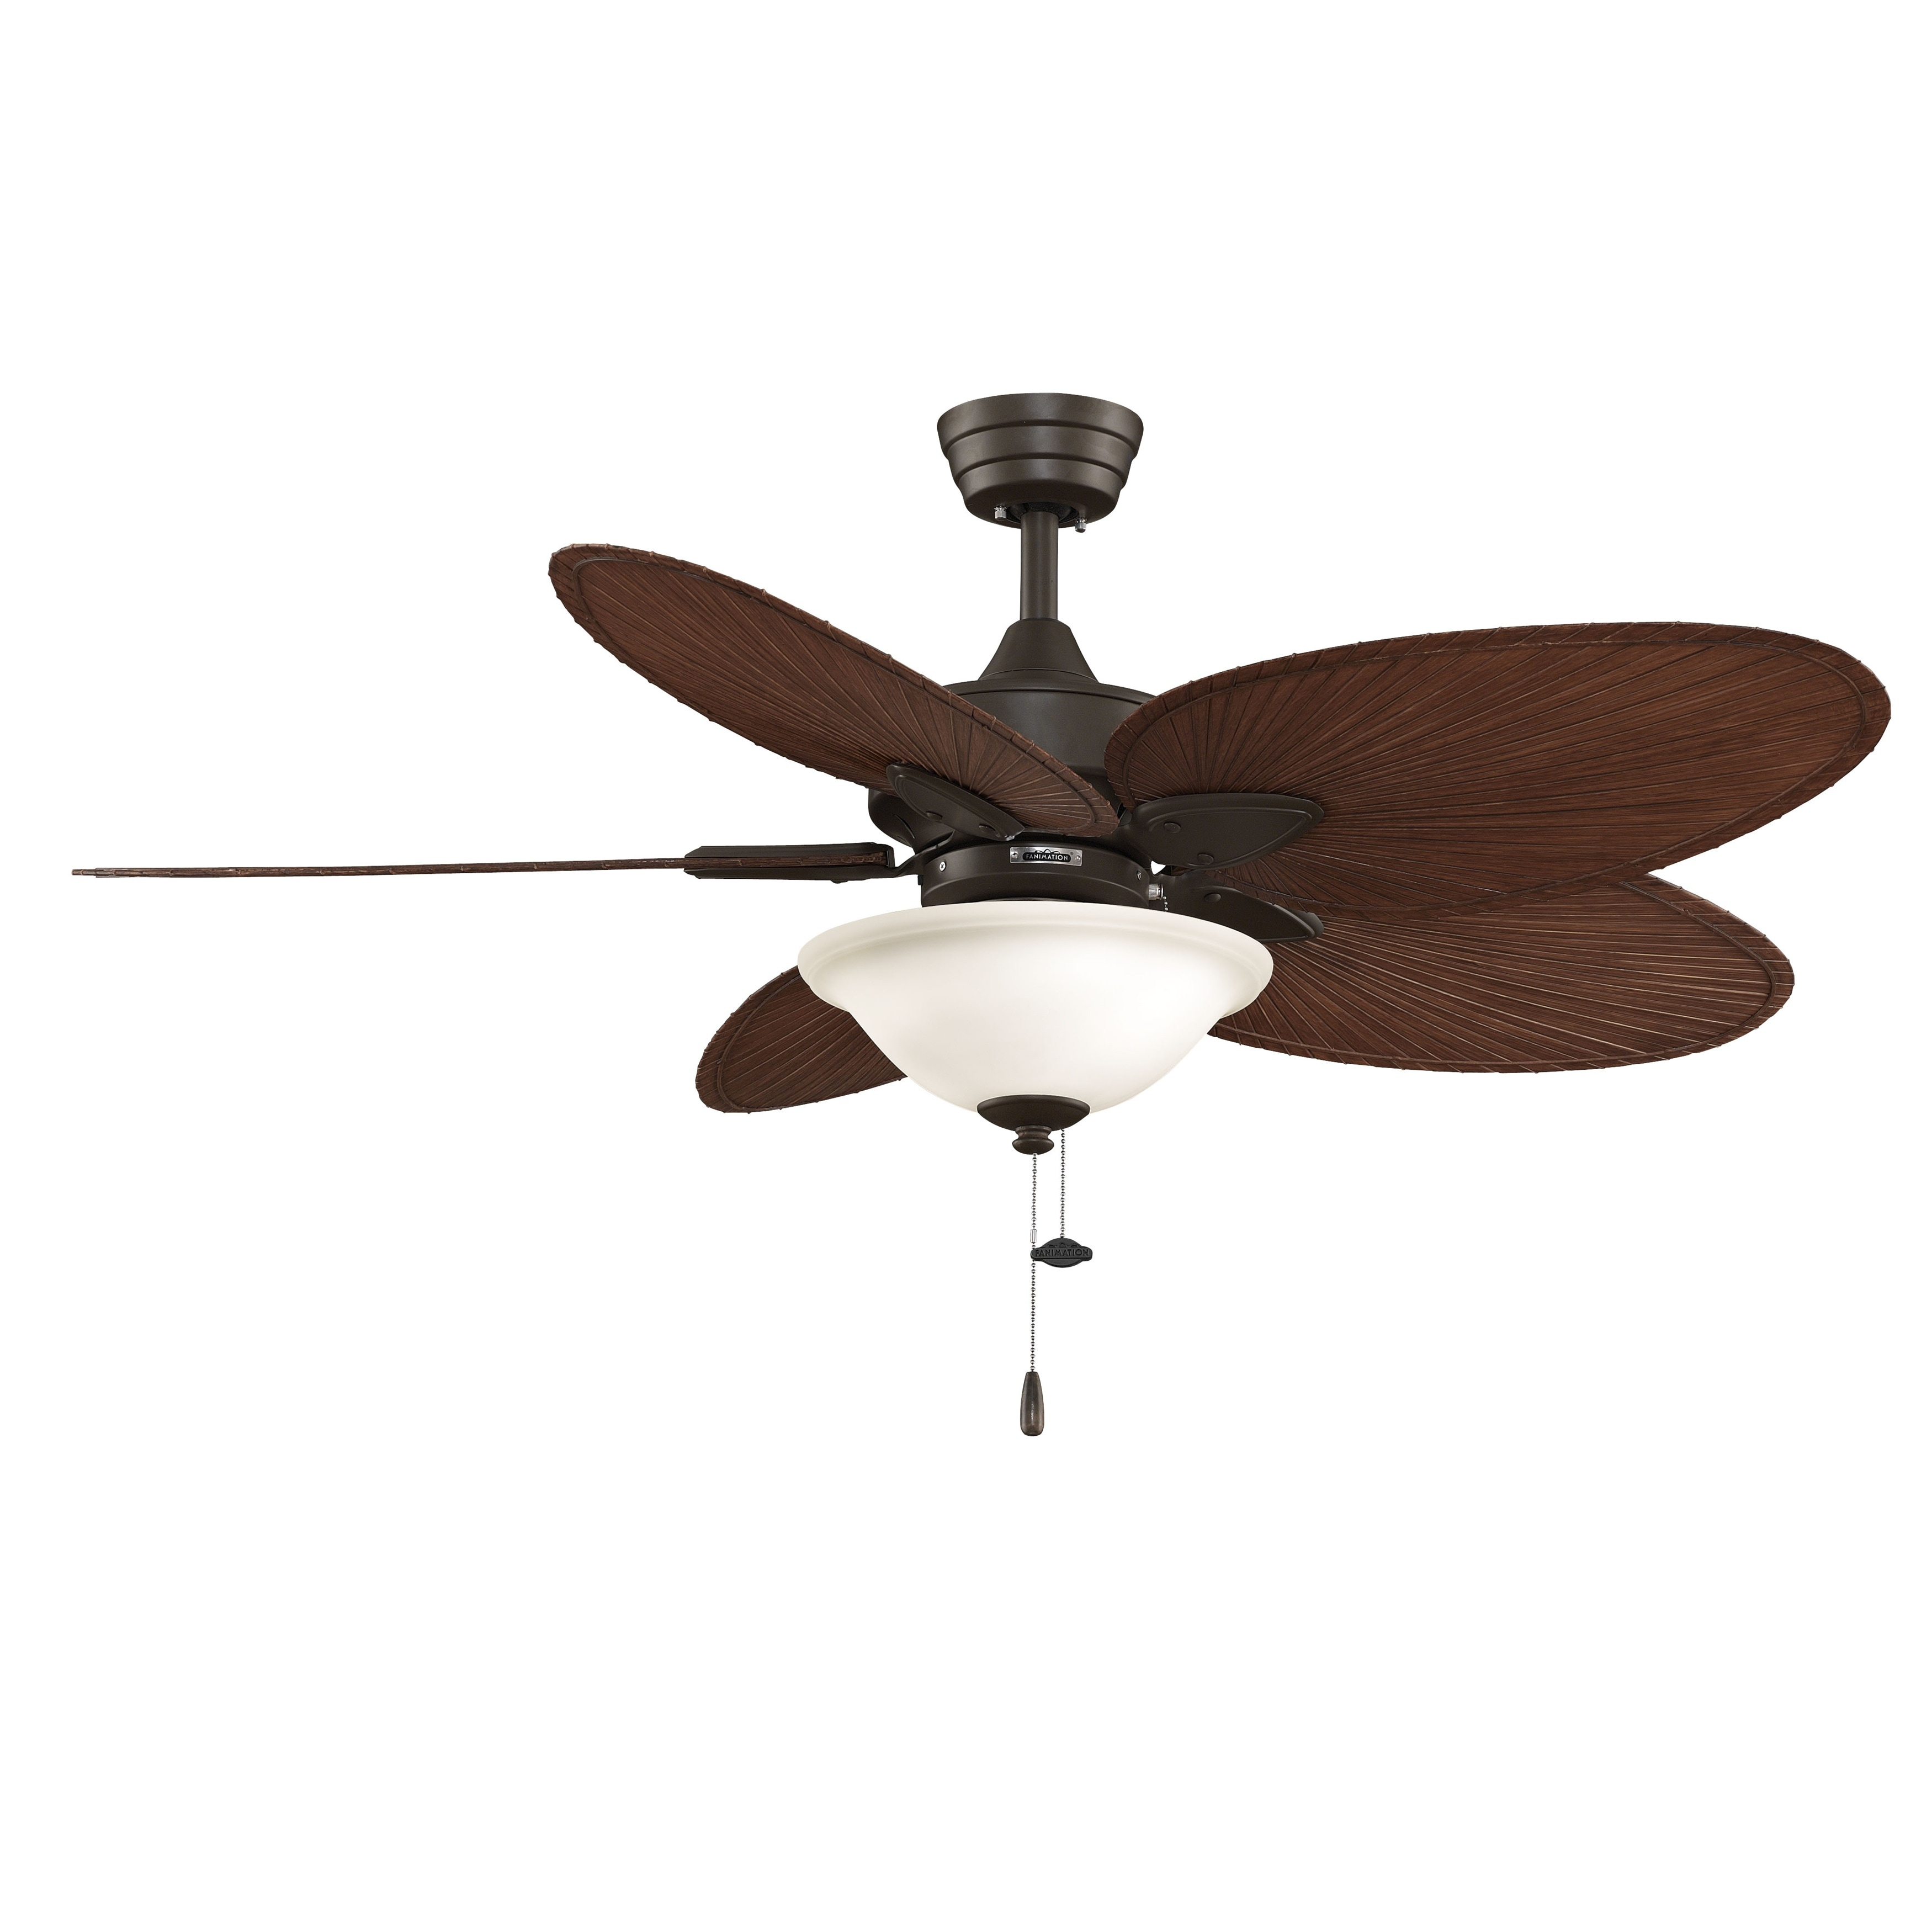 Fanimation Windpointe 52-inch Oil-rubbed Bronze 2-light Ceiling Fan at Sears.com